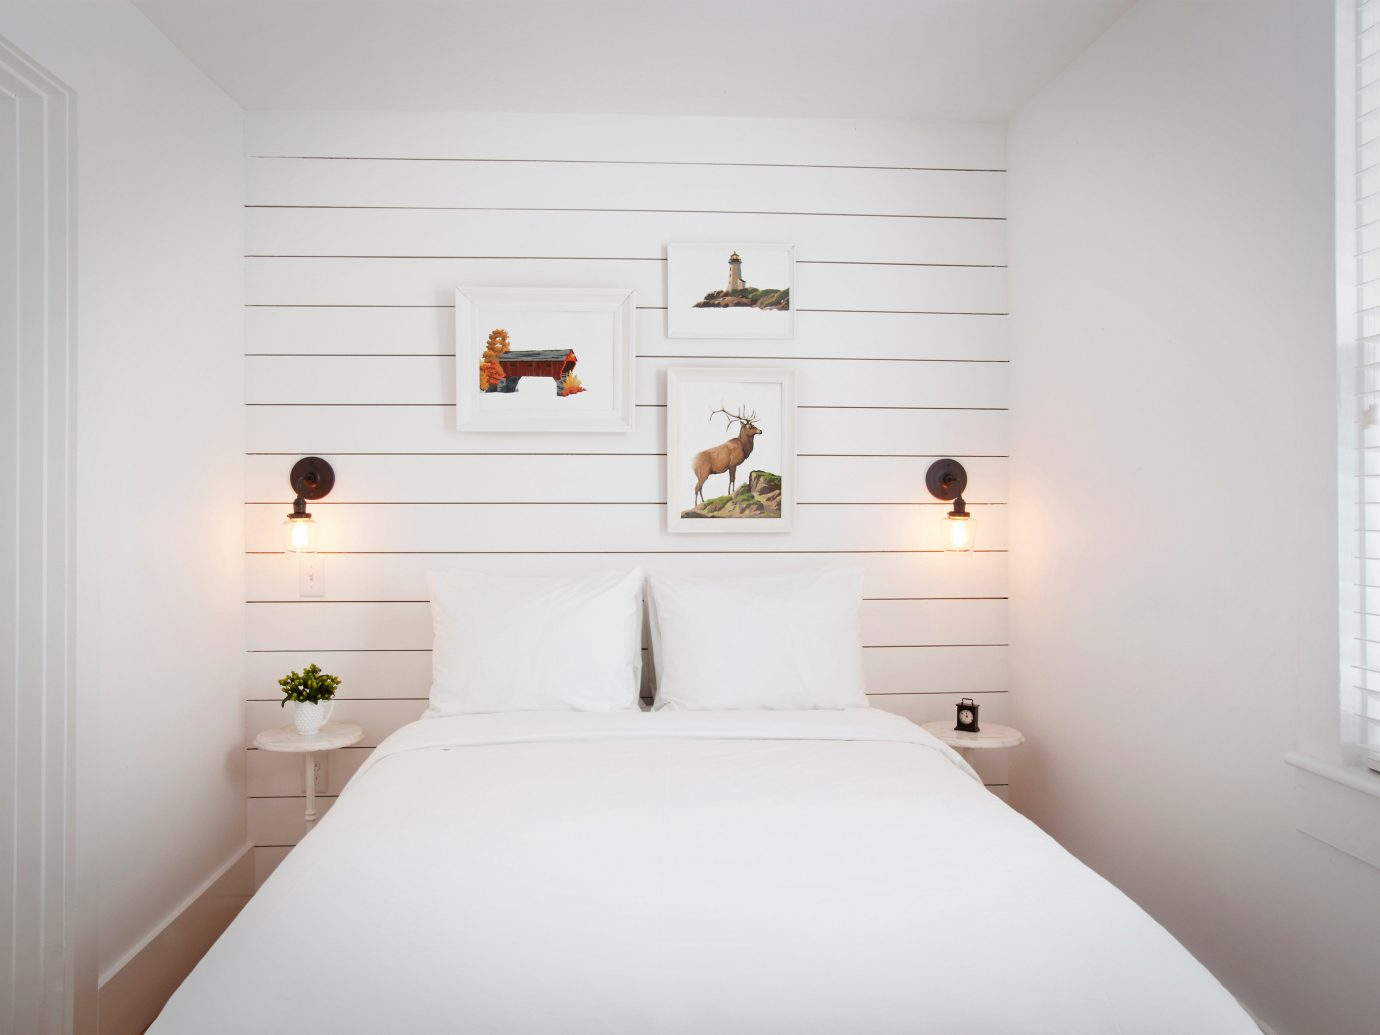 Adult-only B&B Bedroom Boutique Hip Lodge wall indoor white room property bed floor interior design home living room Design lighting furniture ceiling window covering apartment flooring cottage